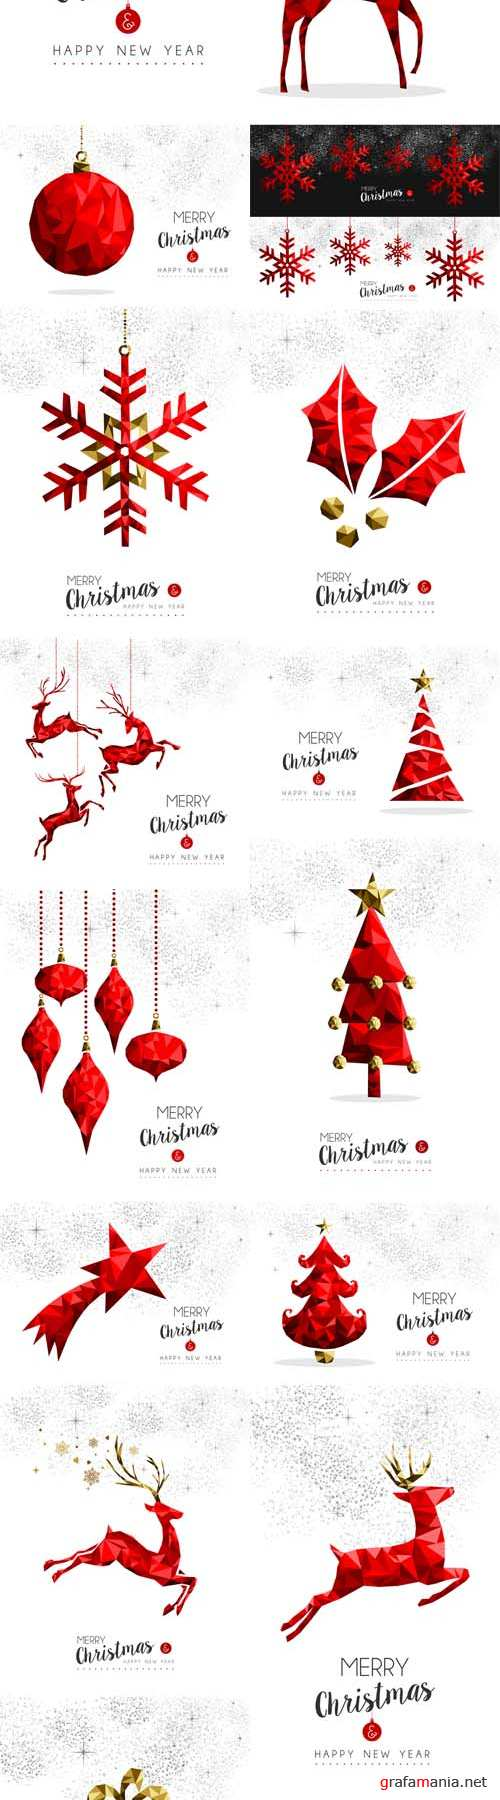 Vector Red Christmas Tree, Deer and Gift Decoration for Greeting Card